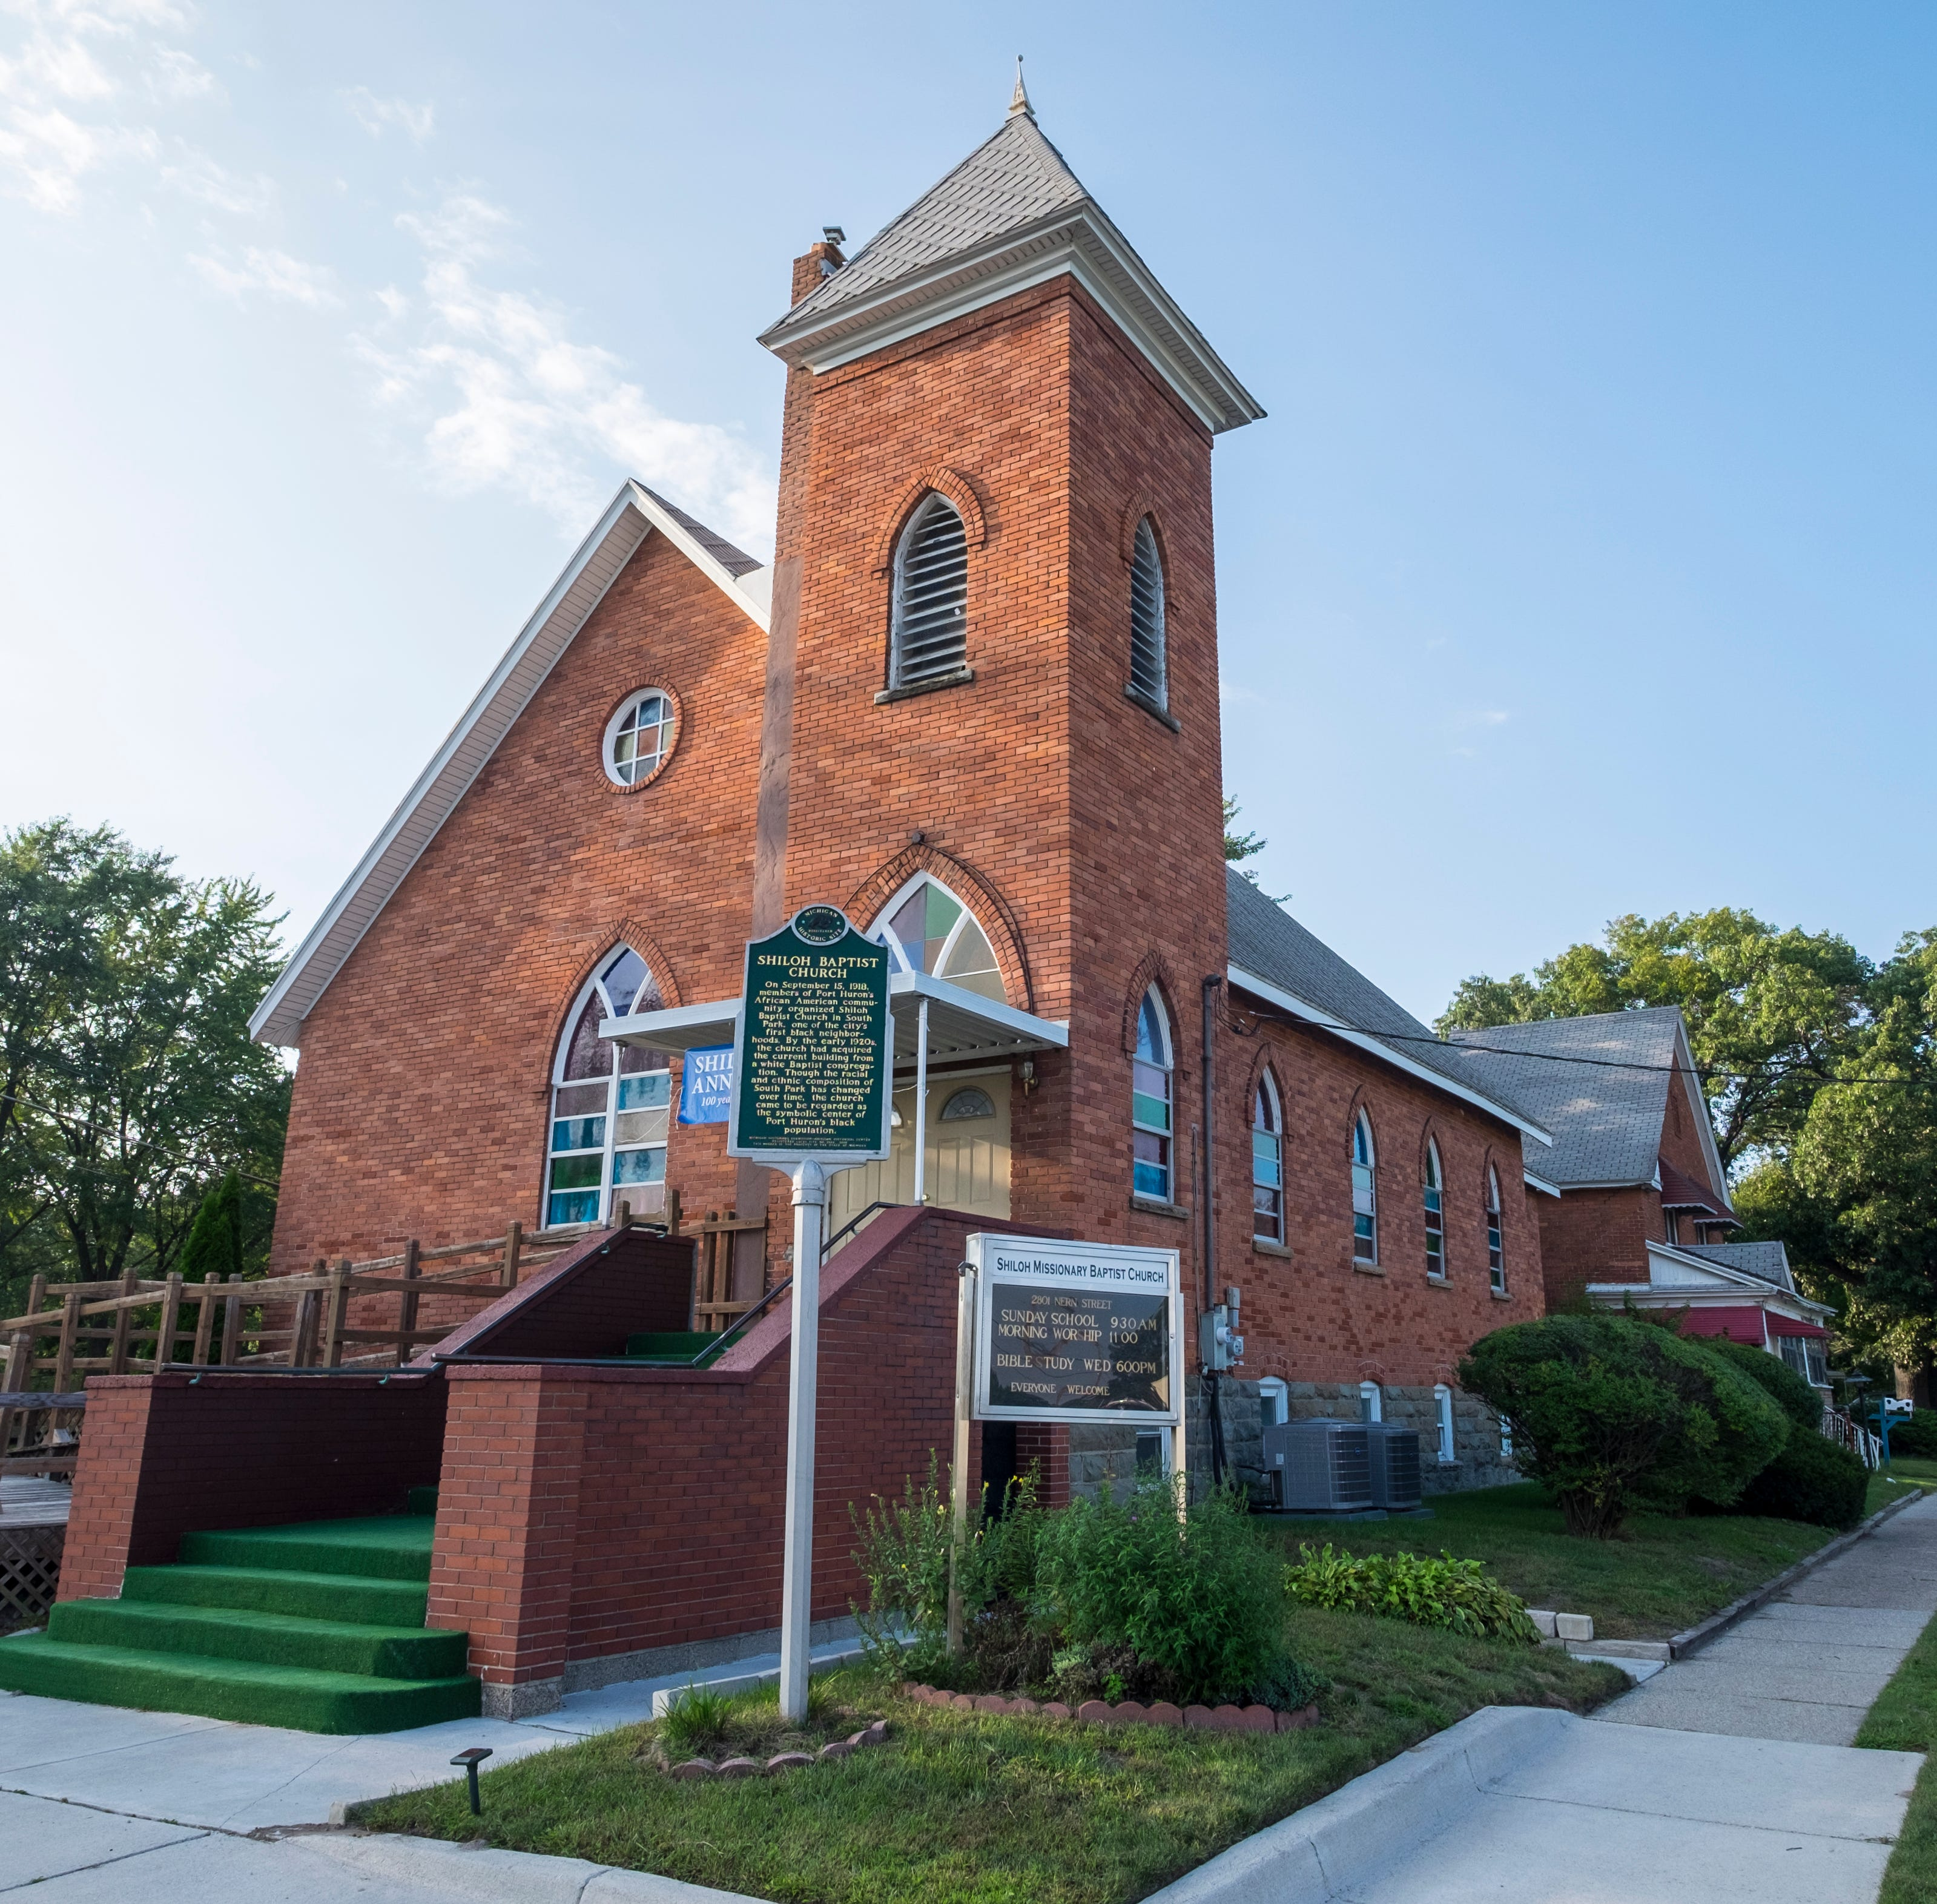 Shiloh Baptist Church celebrates 100 years as 'a beacon'